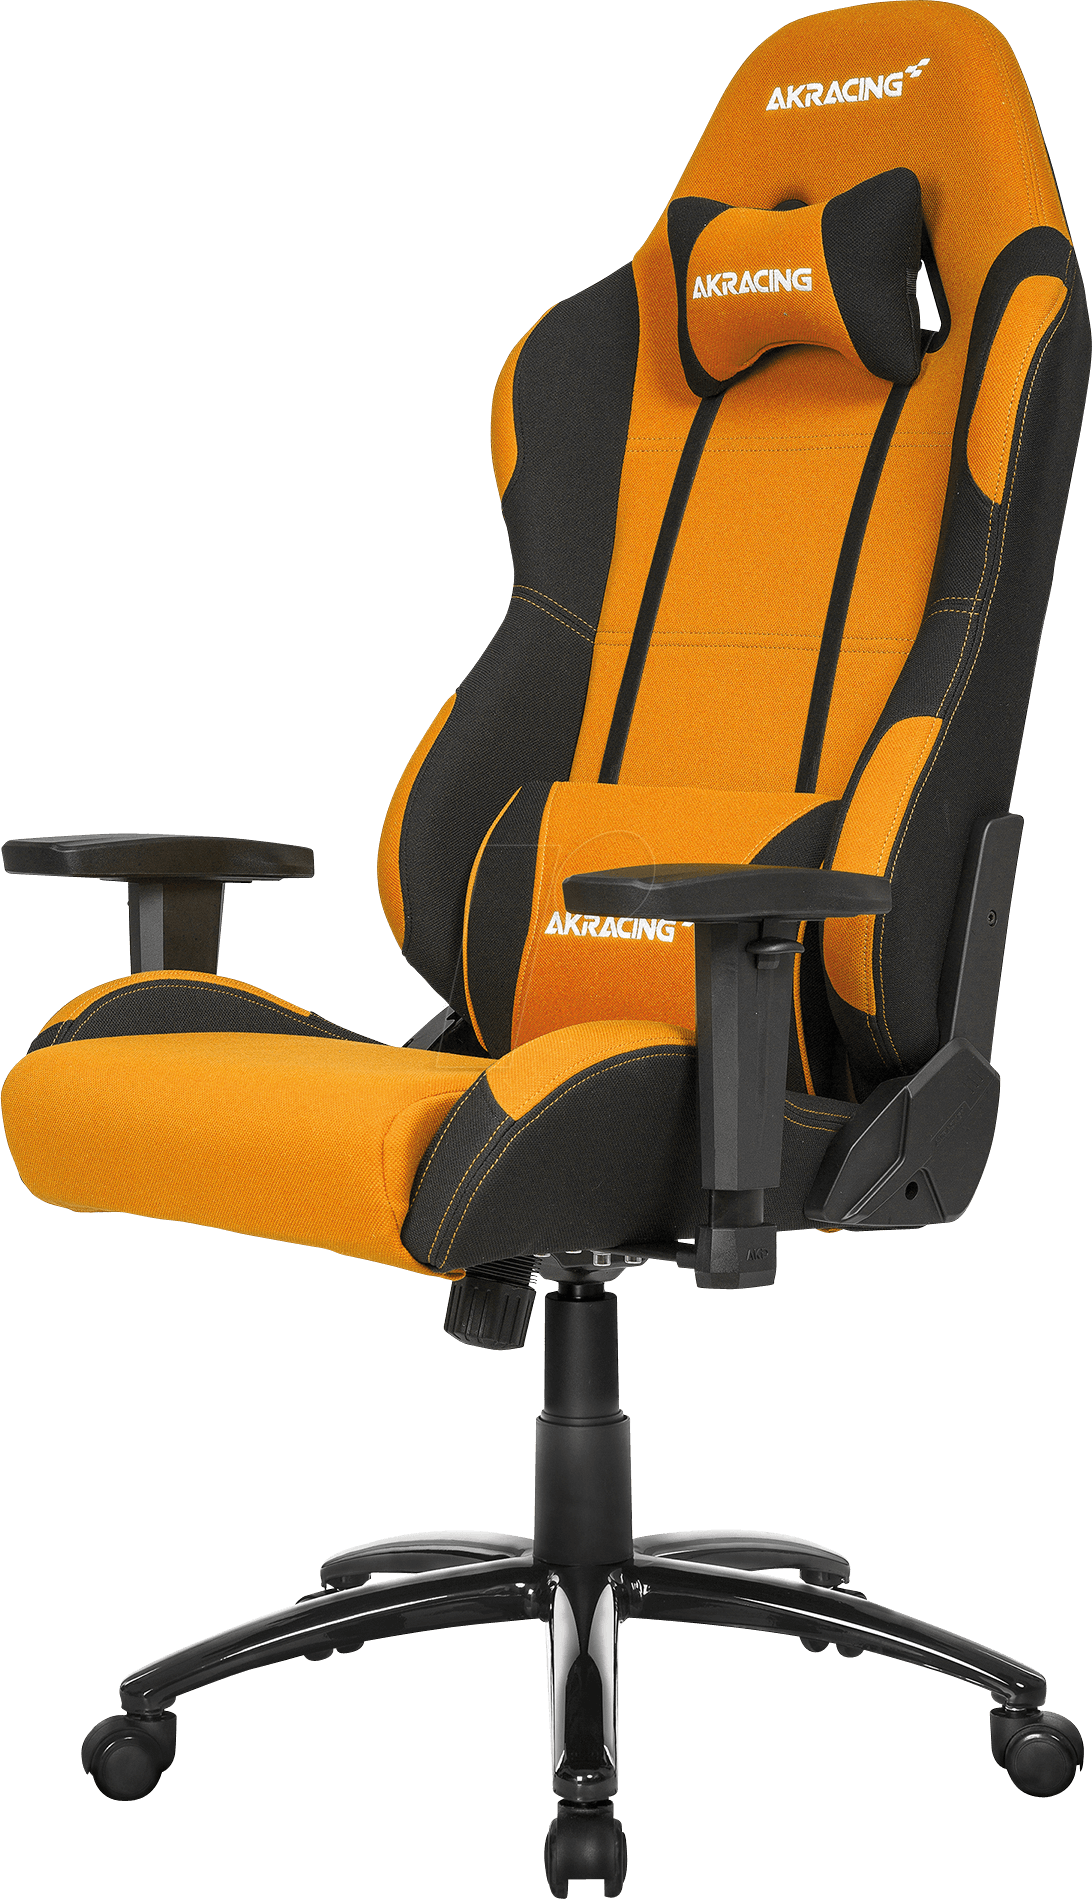 Akracing Prime Gaming Chair Black Orange Ak K7018 Bo